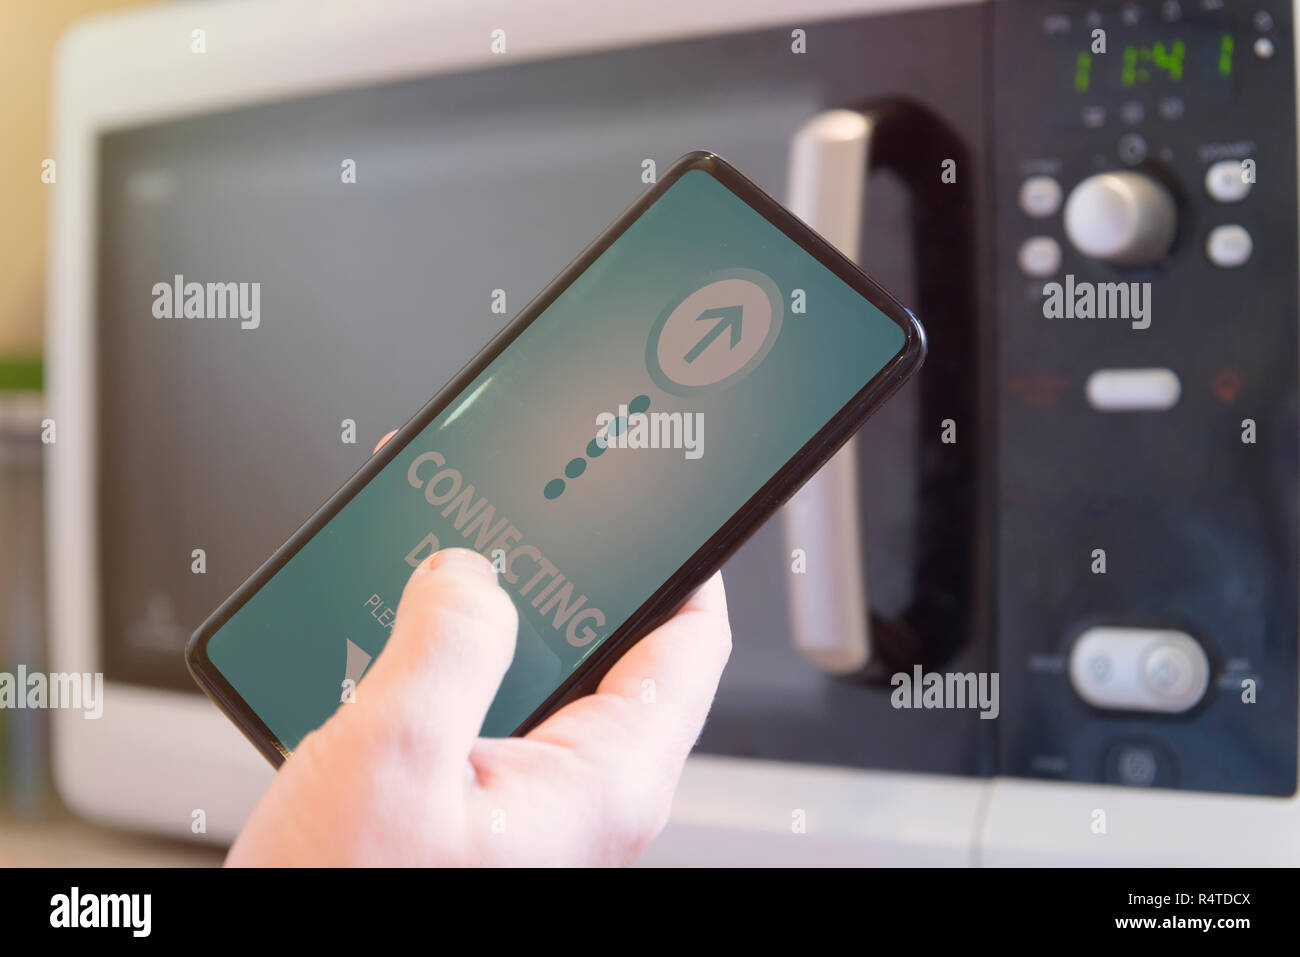 Connecting microwave oven with smart phone. Smart home and Internet of Things IoT concept - Stock Image